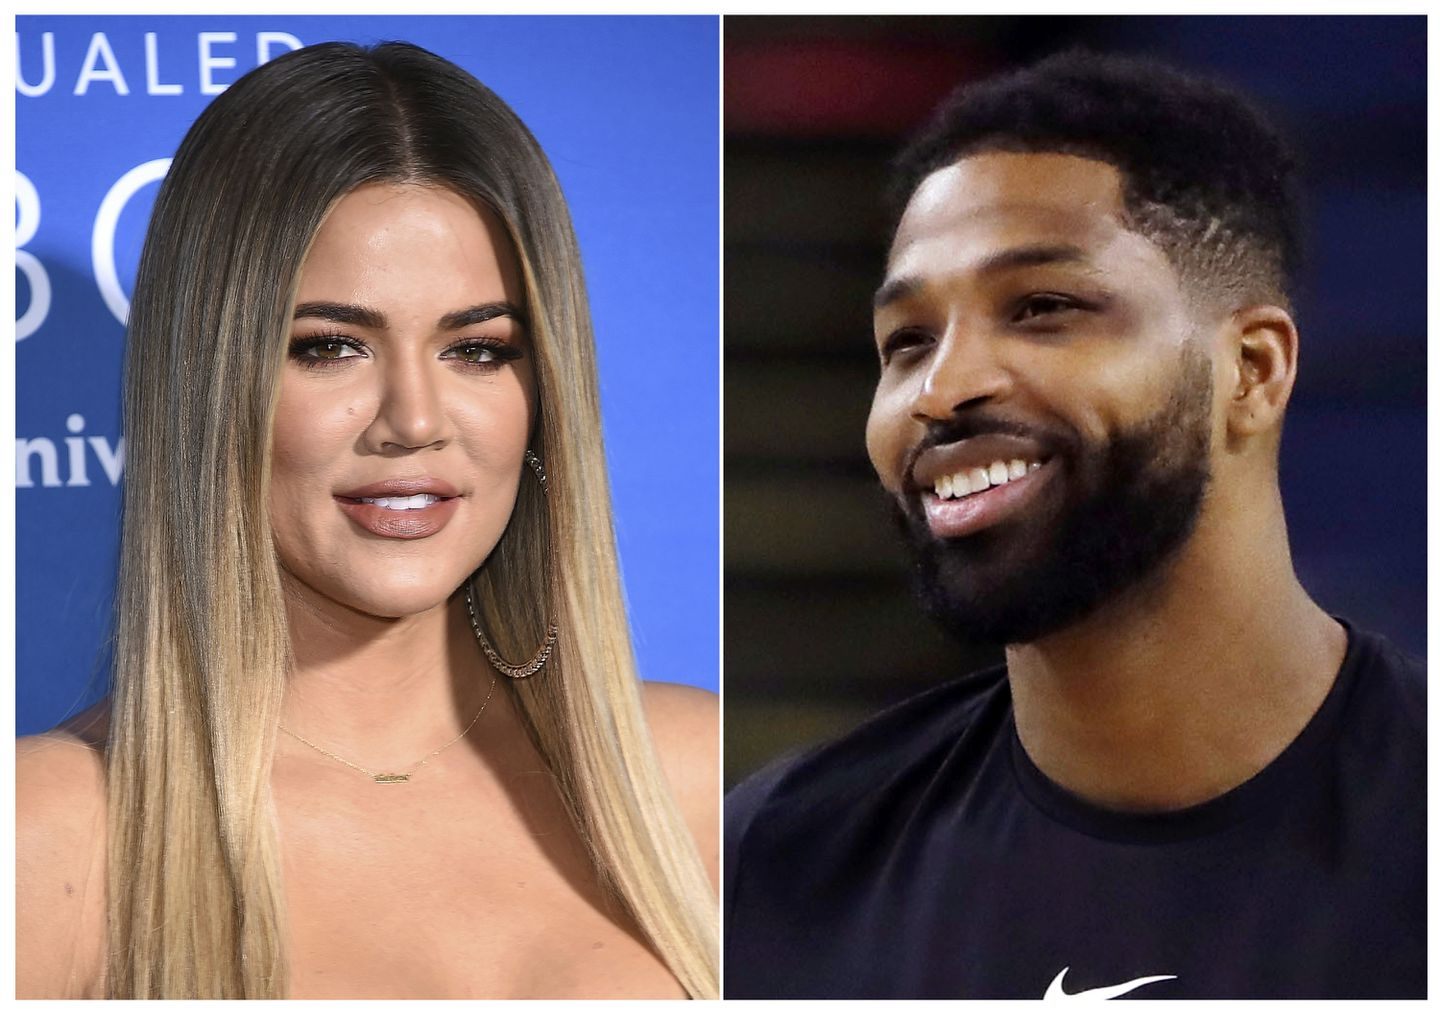 KUWTK: Tristan Thompson Reportedly Feels Really 'Lucky' To Have Khloe Kardashian With Him In Boston While He Adjusts – Here's Why!